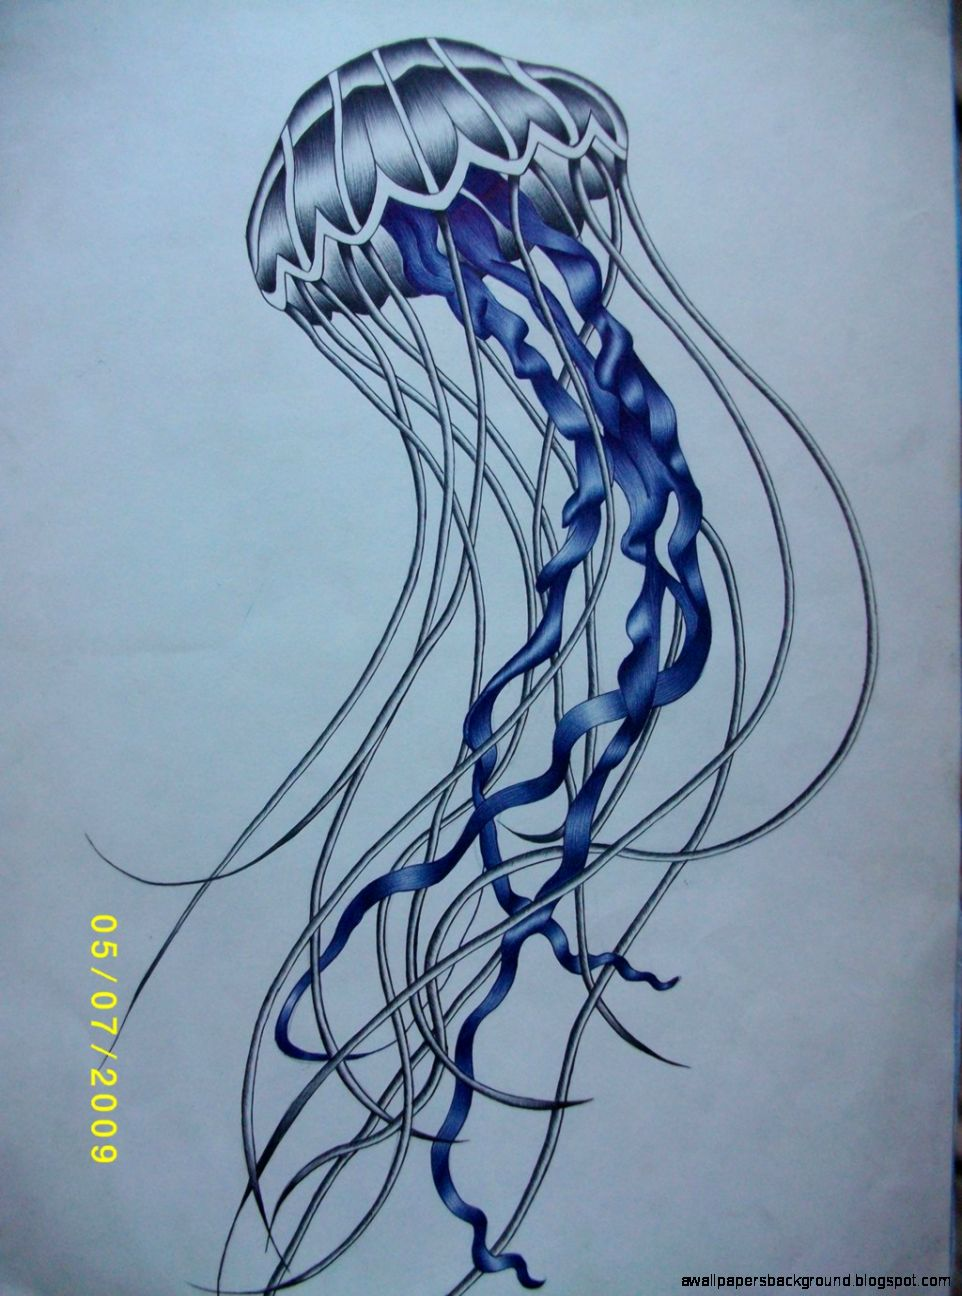 Jelly Fish Drawing at GetDrawings.com | Free for personal use Jelly ...